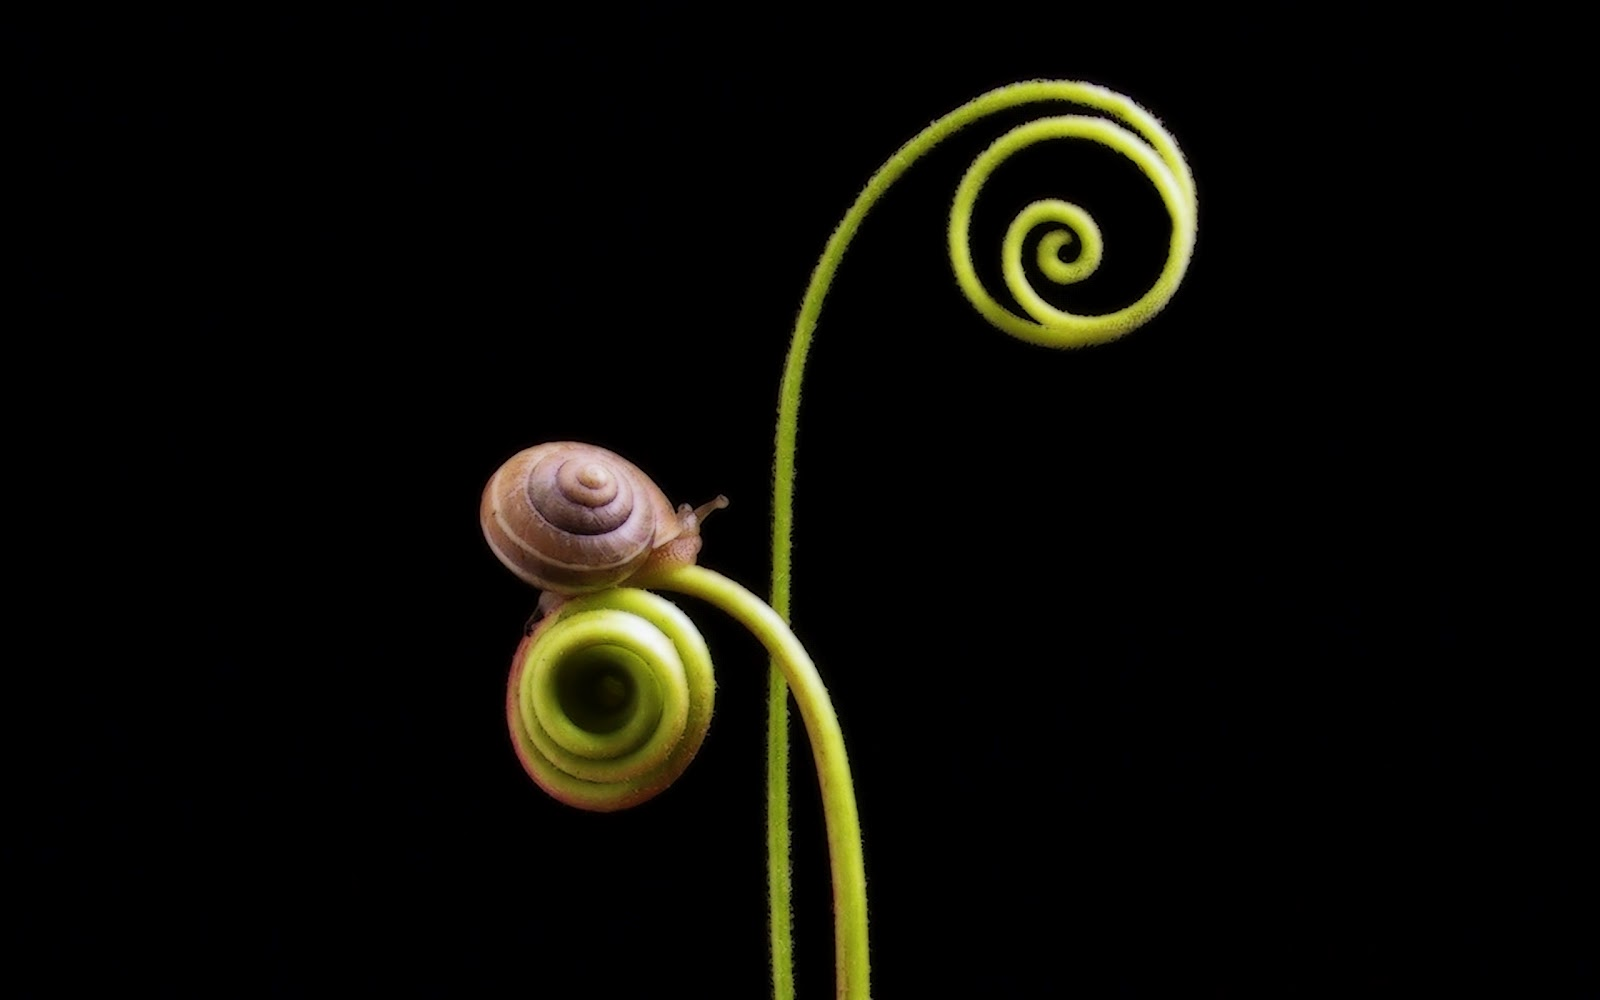 Snails Wallpapers - Pets Cute and Docile